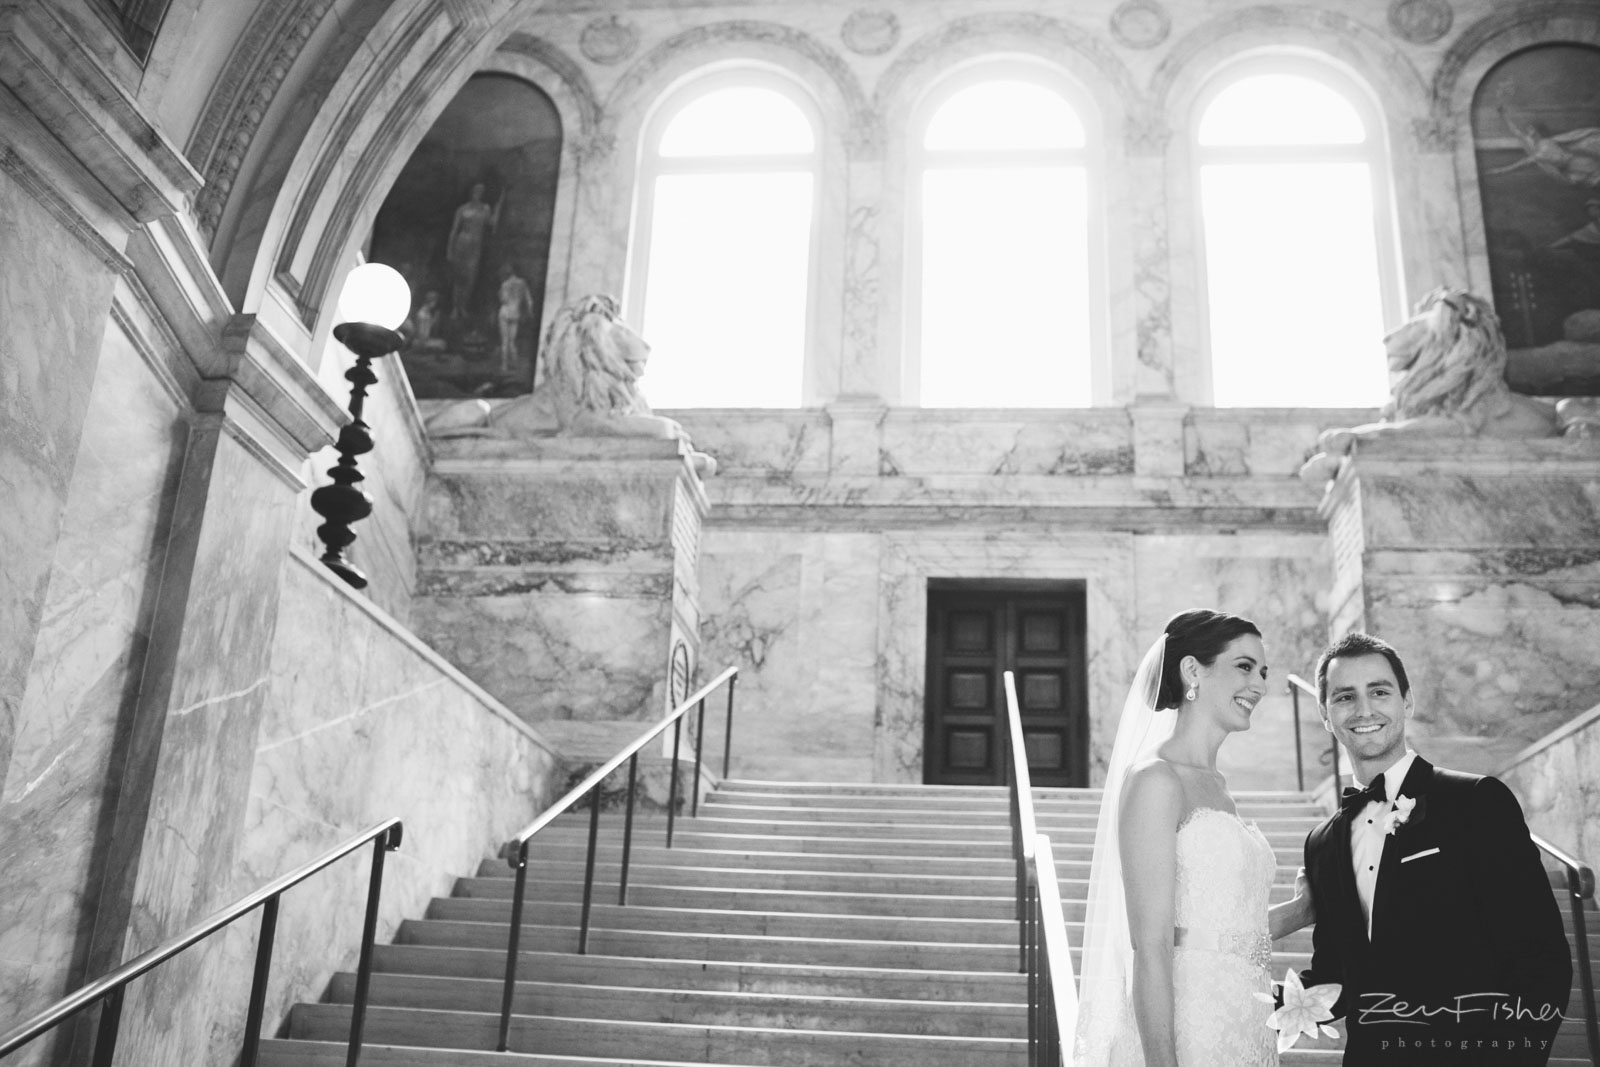 Bride and groom on the marble stairs, smiling and looking away, large windows cast natural light.